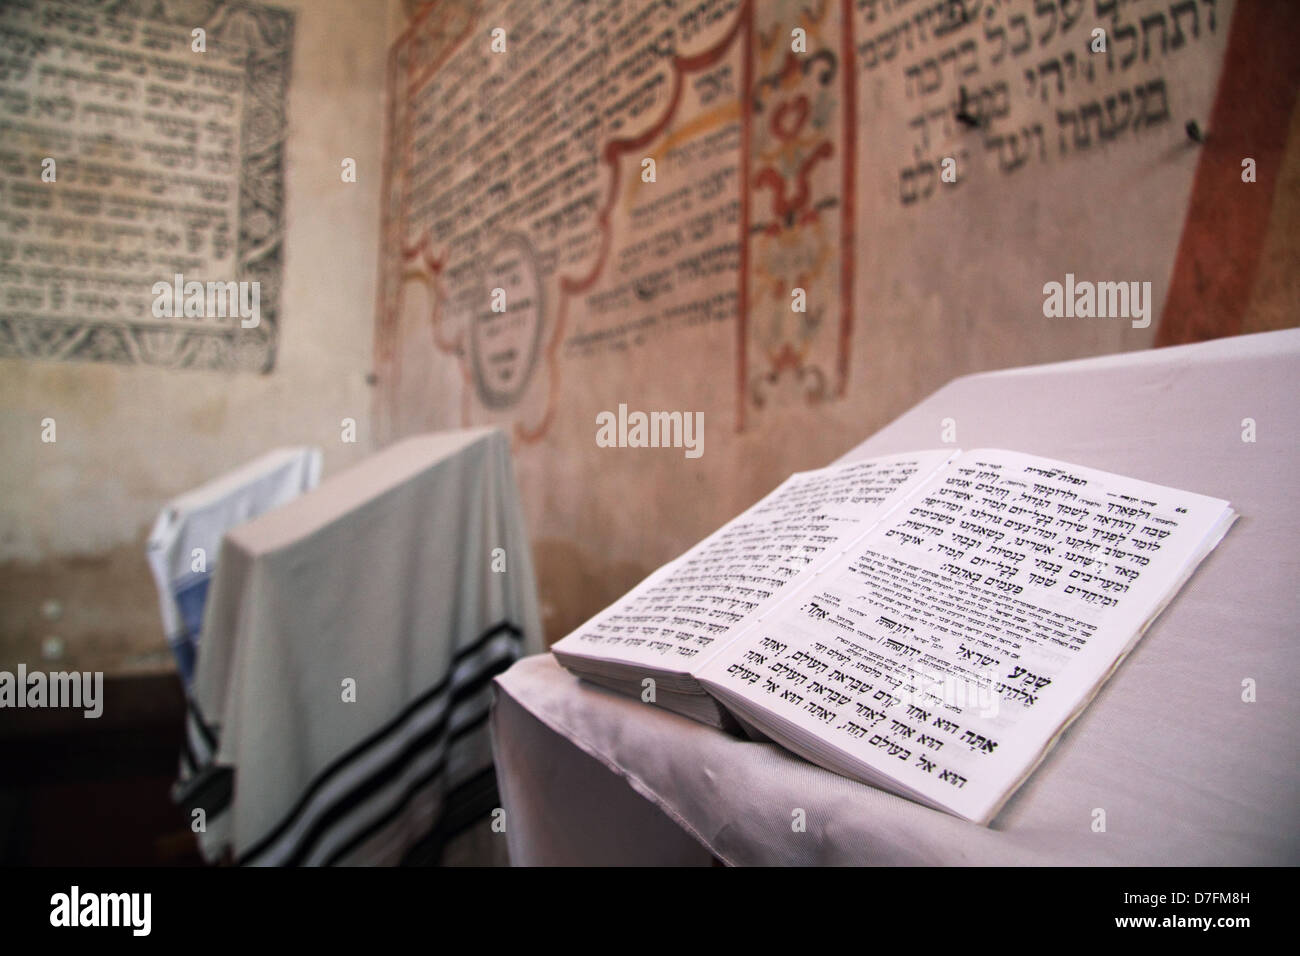 Shema Israel Prayer in a siddur opened in front of the Holy Ark at Tykocin (Tiktin) Synagogue, Poland - Stock Image